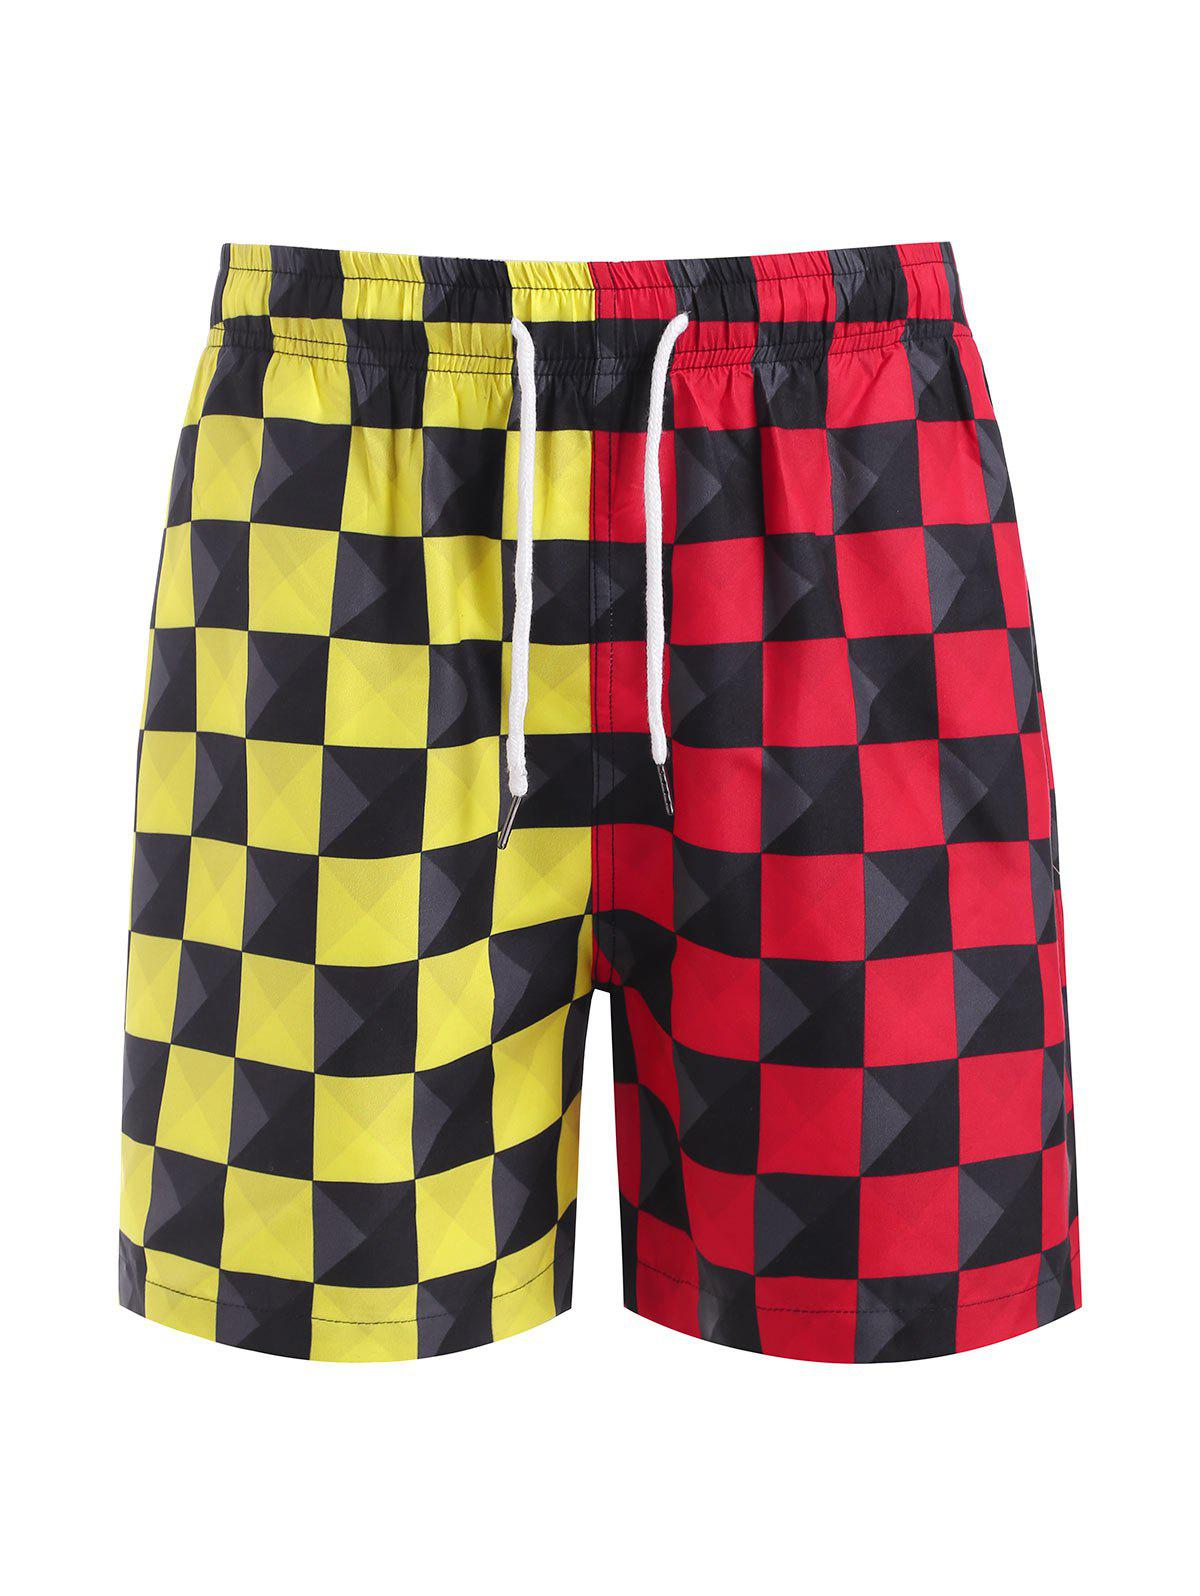 Contrast Checkerboard Print Casual Shorts - RED M